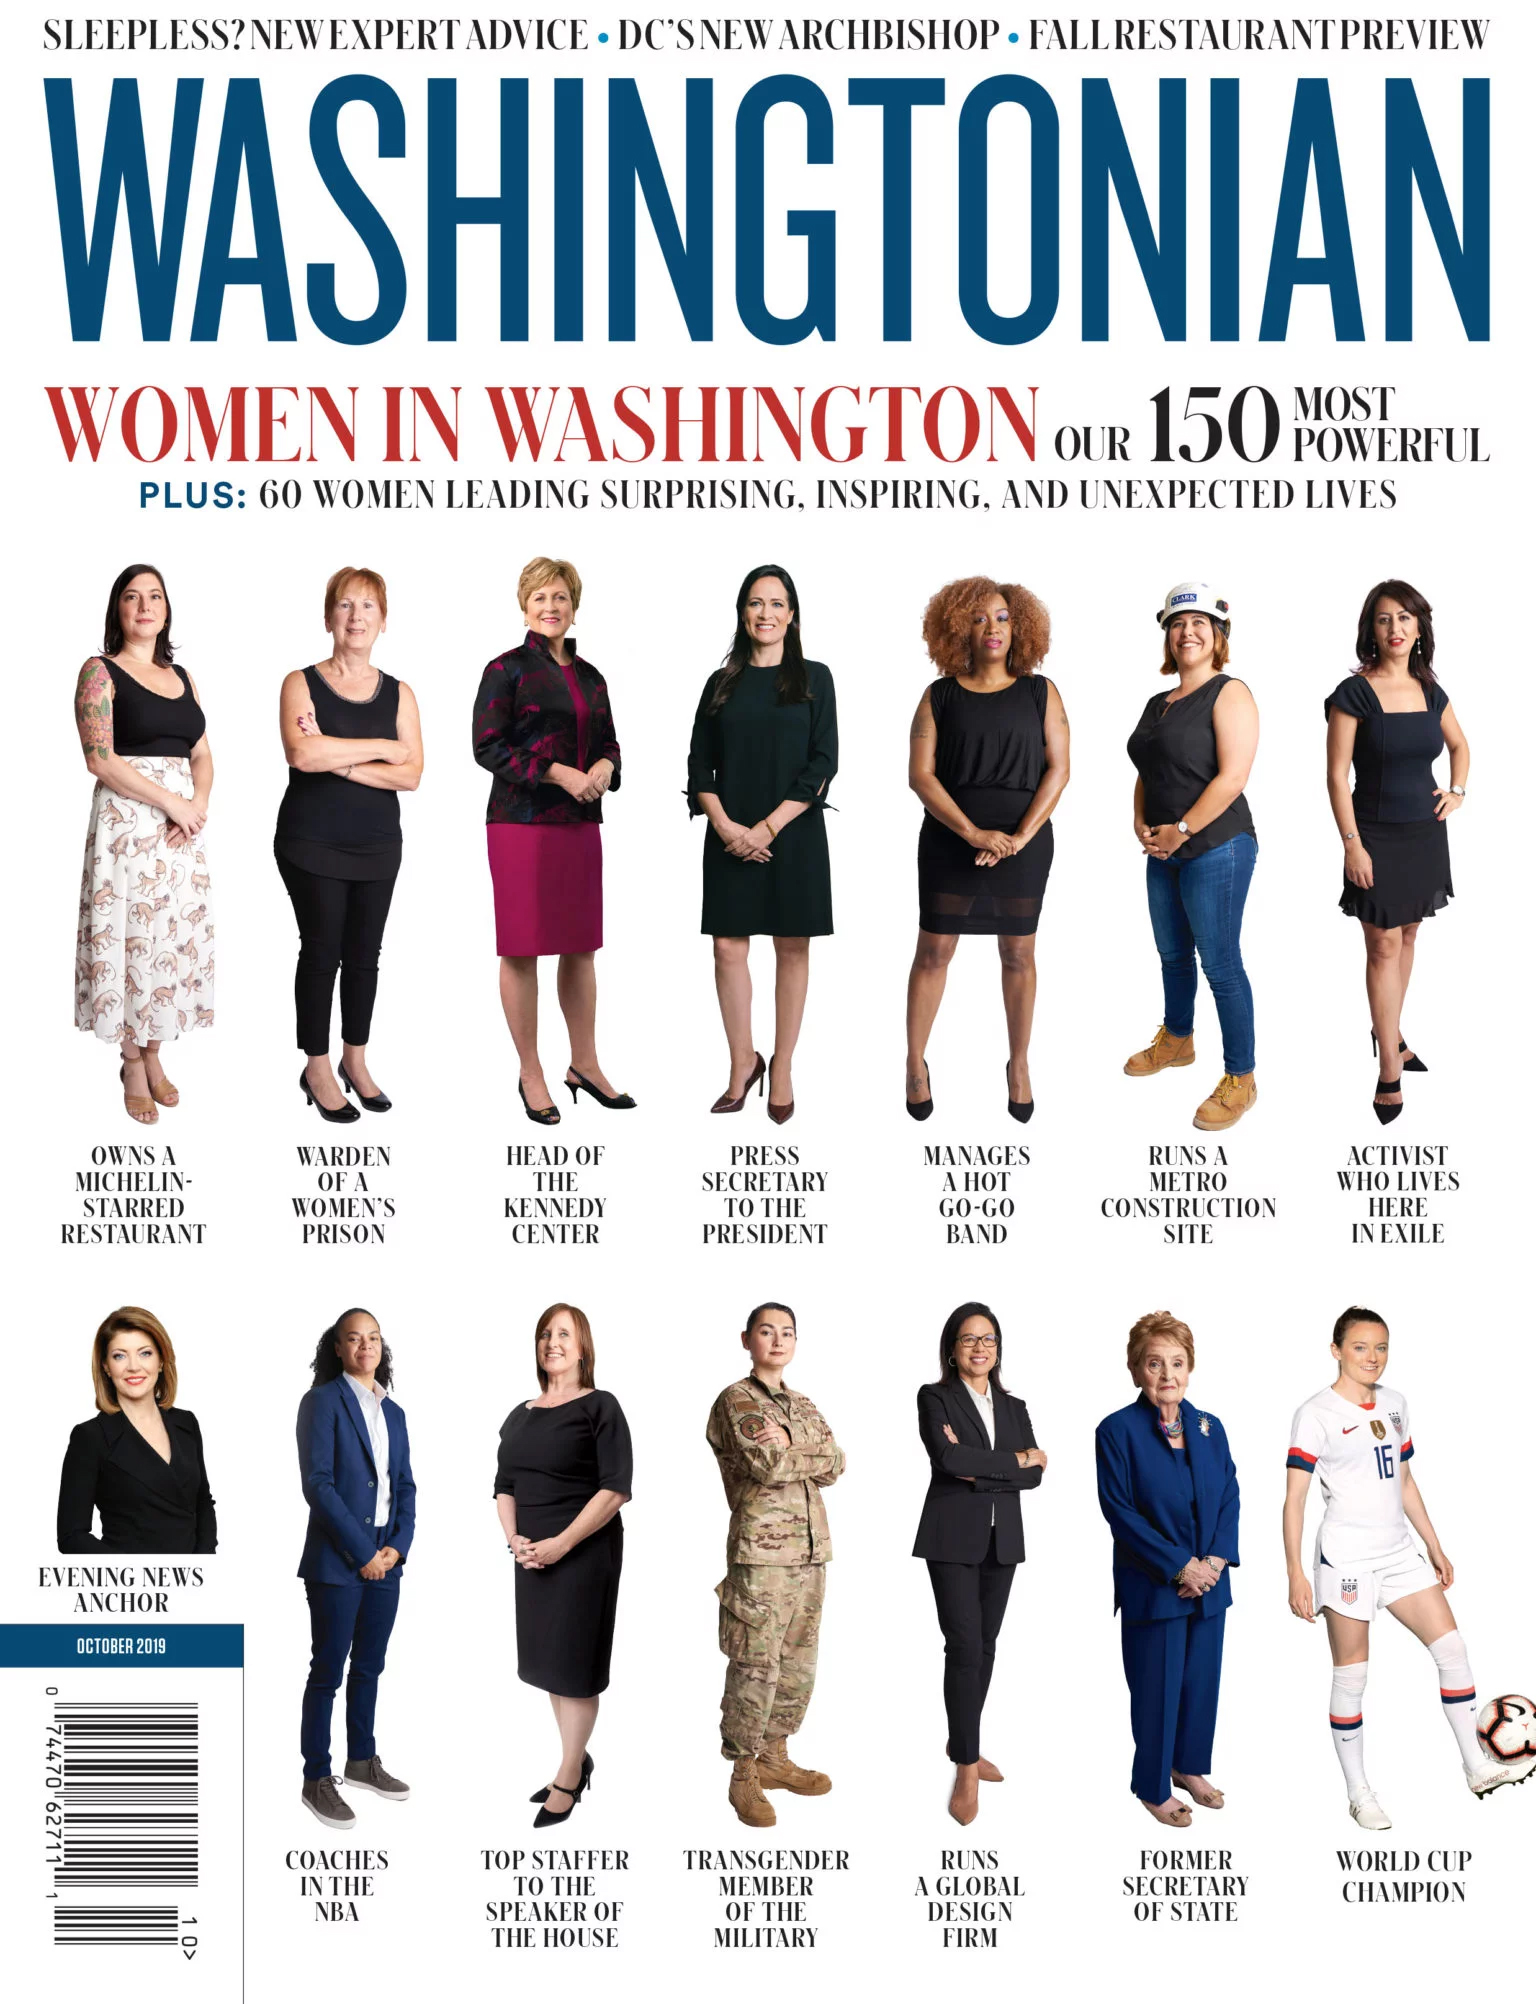 WASHINGTONIAN OCT 2019.jpg